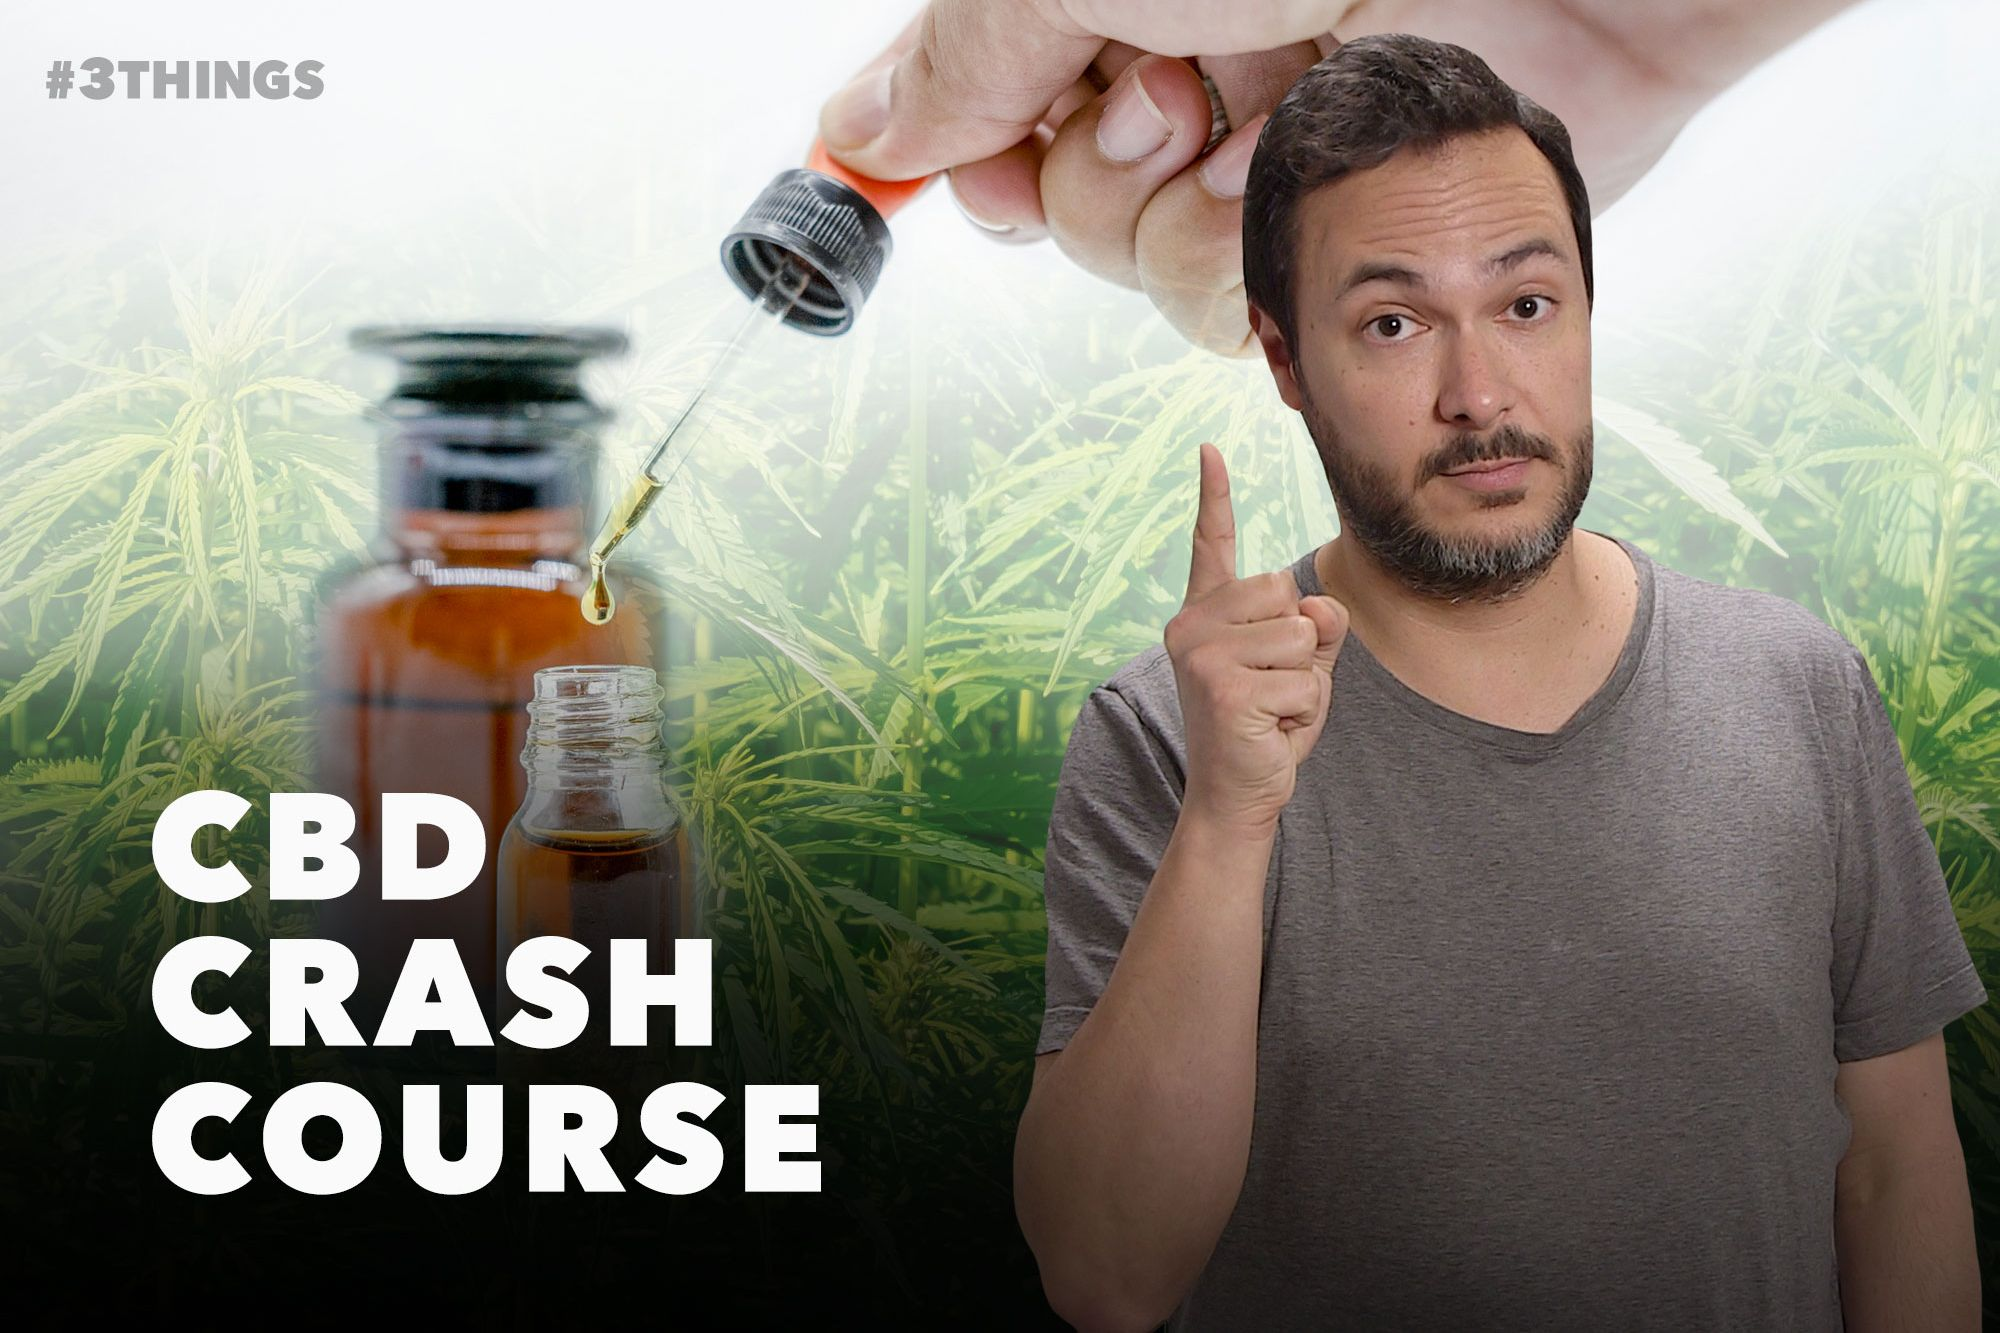 5 Fast Facts About CBD (60-Second Video)